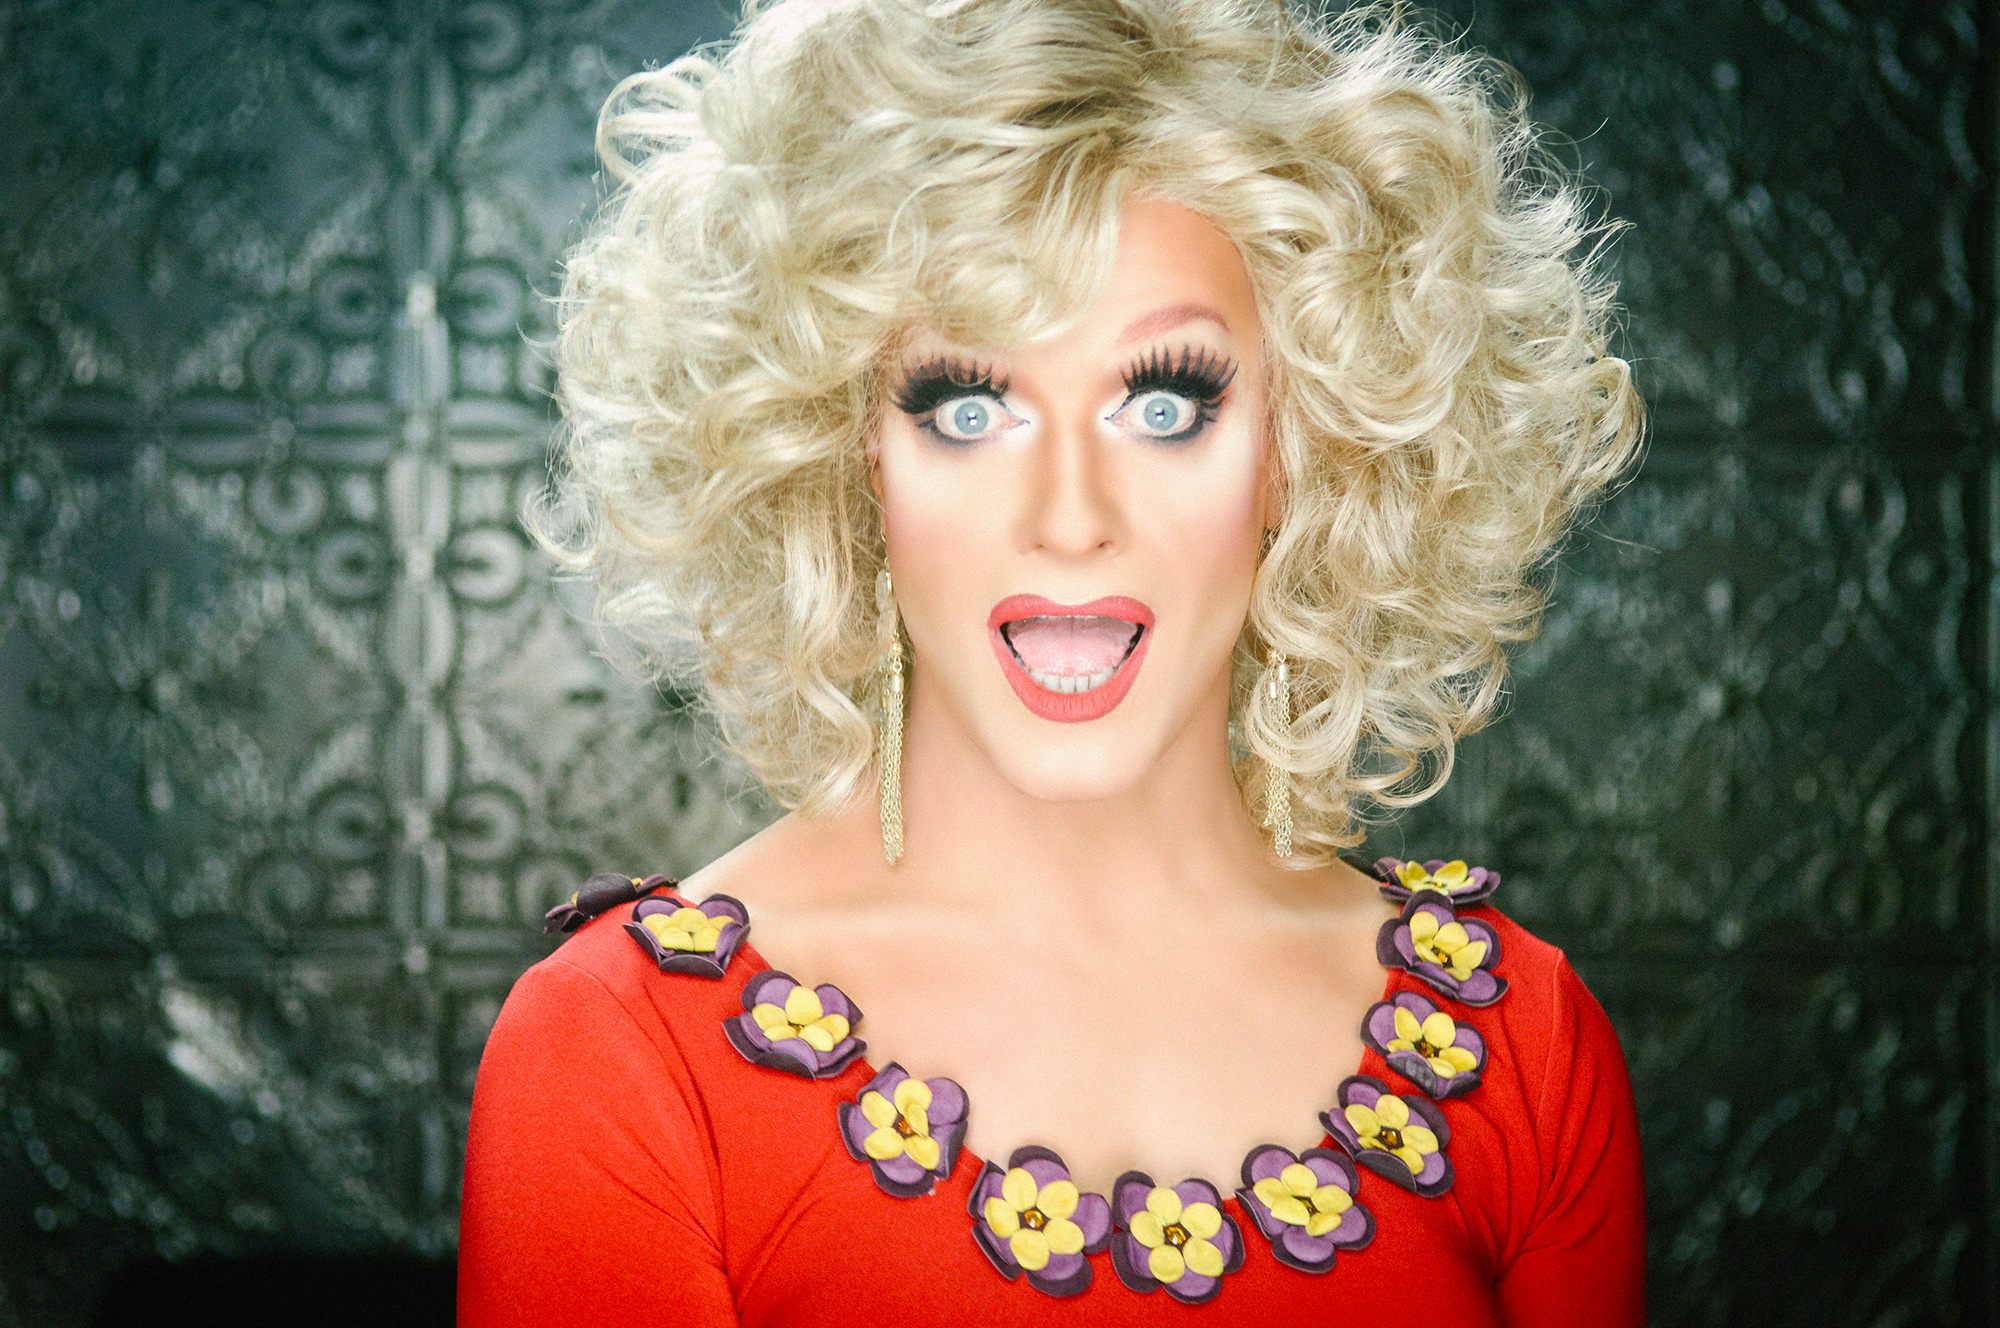 Ireland's much-loved drag queen Panti Bliss.